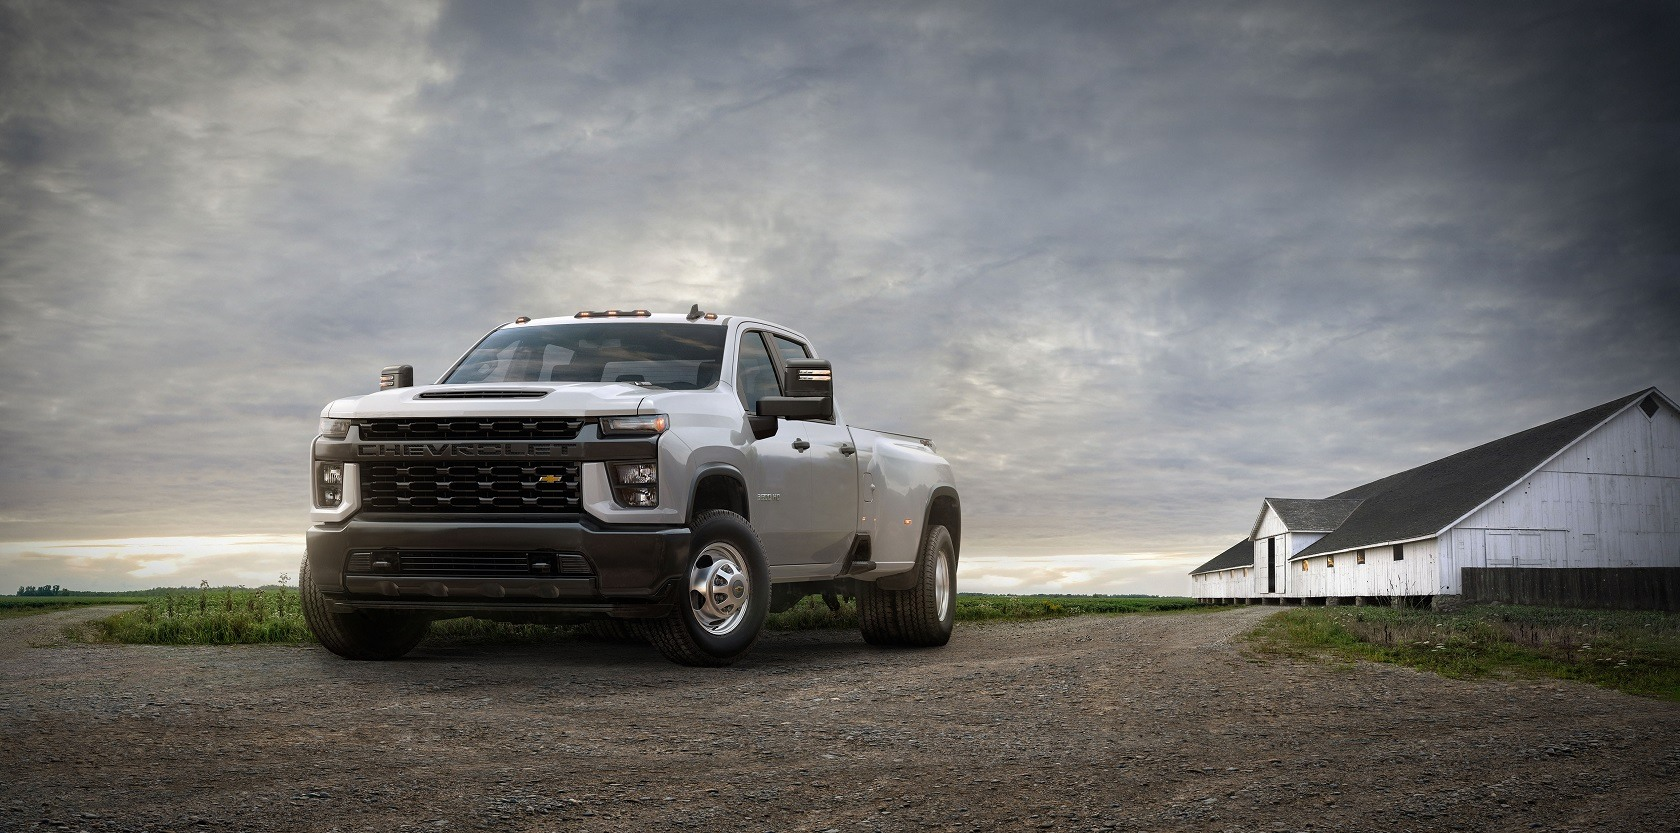 2020 Chevrolet Silverado 3500 HD - What We Know So Far ...